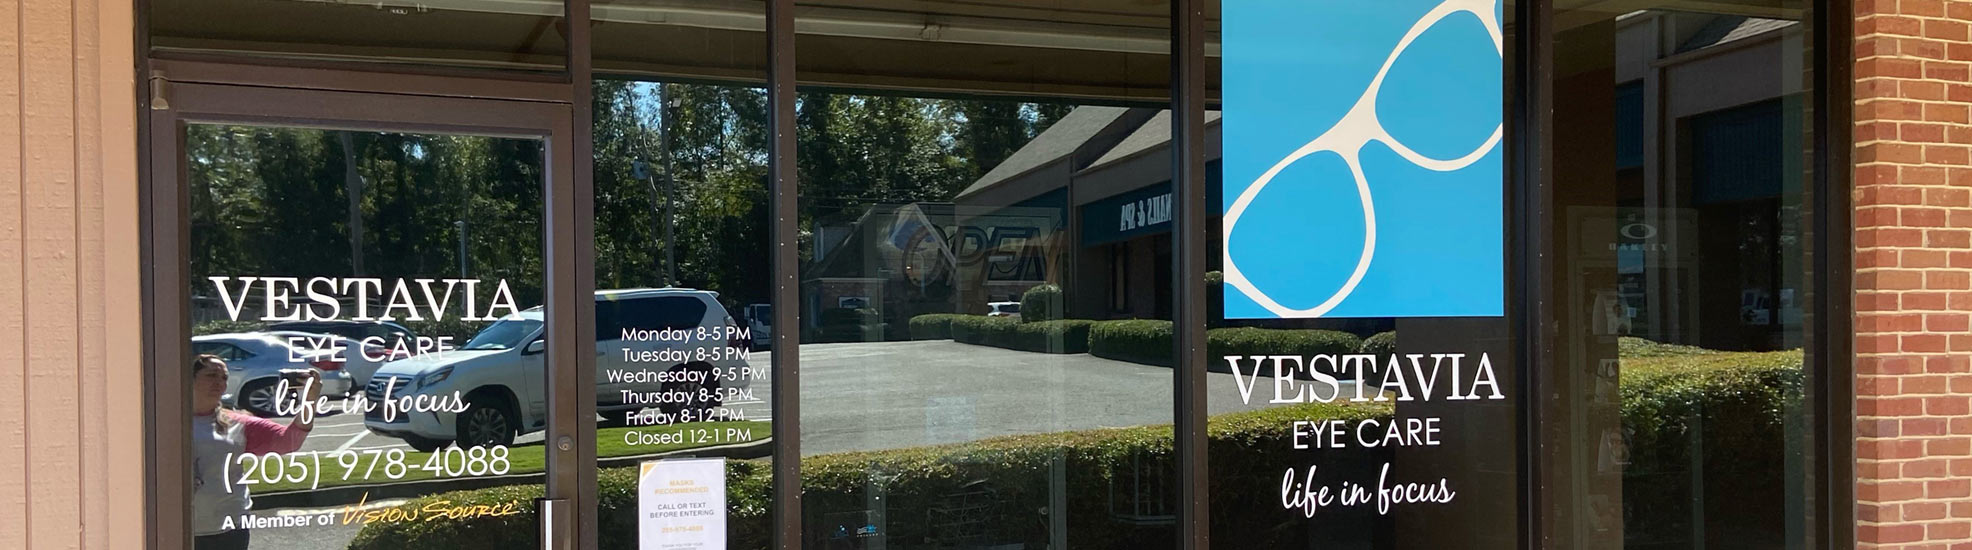 Meet the Vestavia Eye Care Doctors and Staff